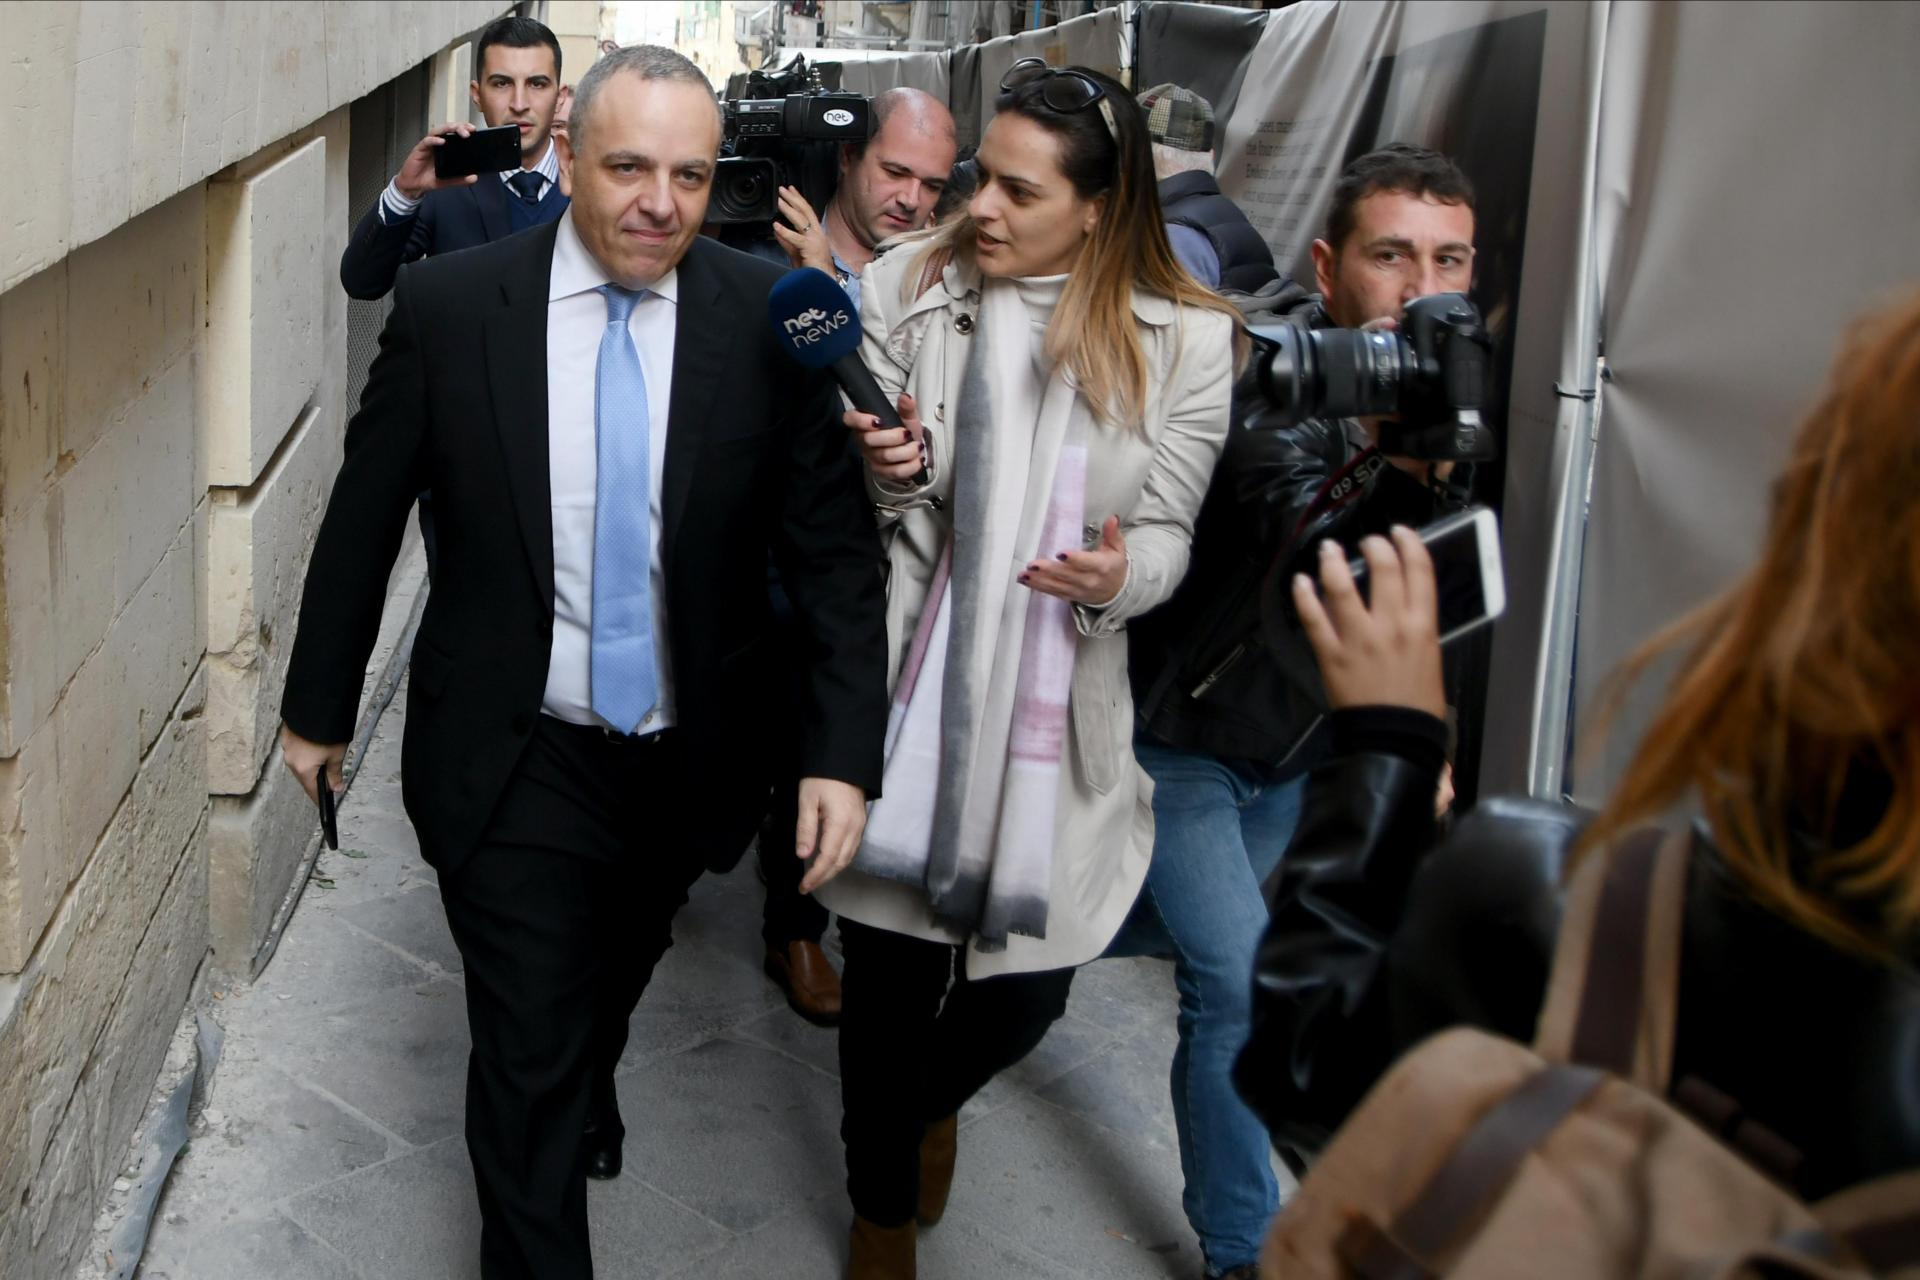 Keith Schembri in a previous court appearance.